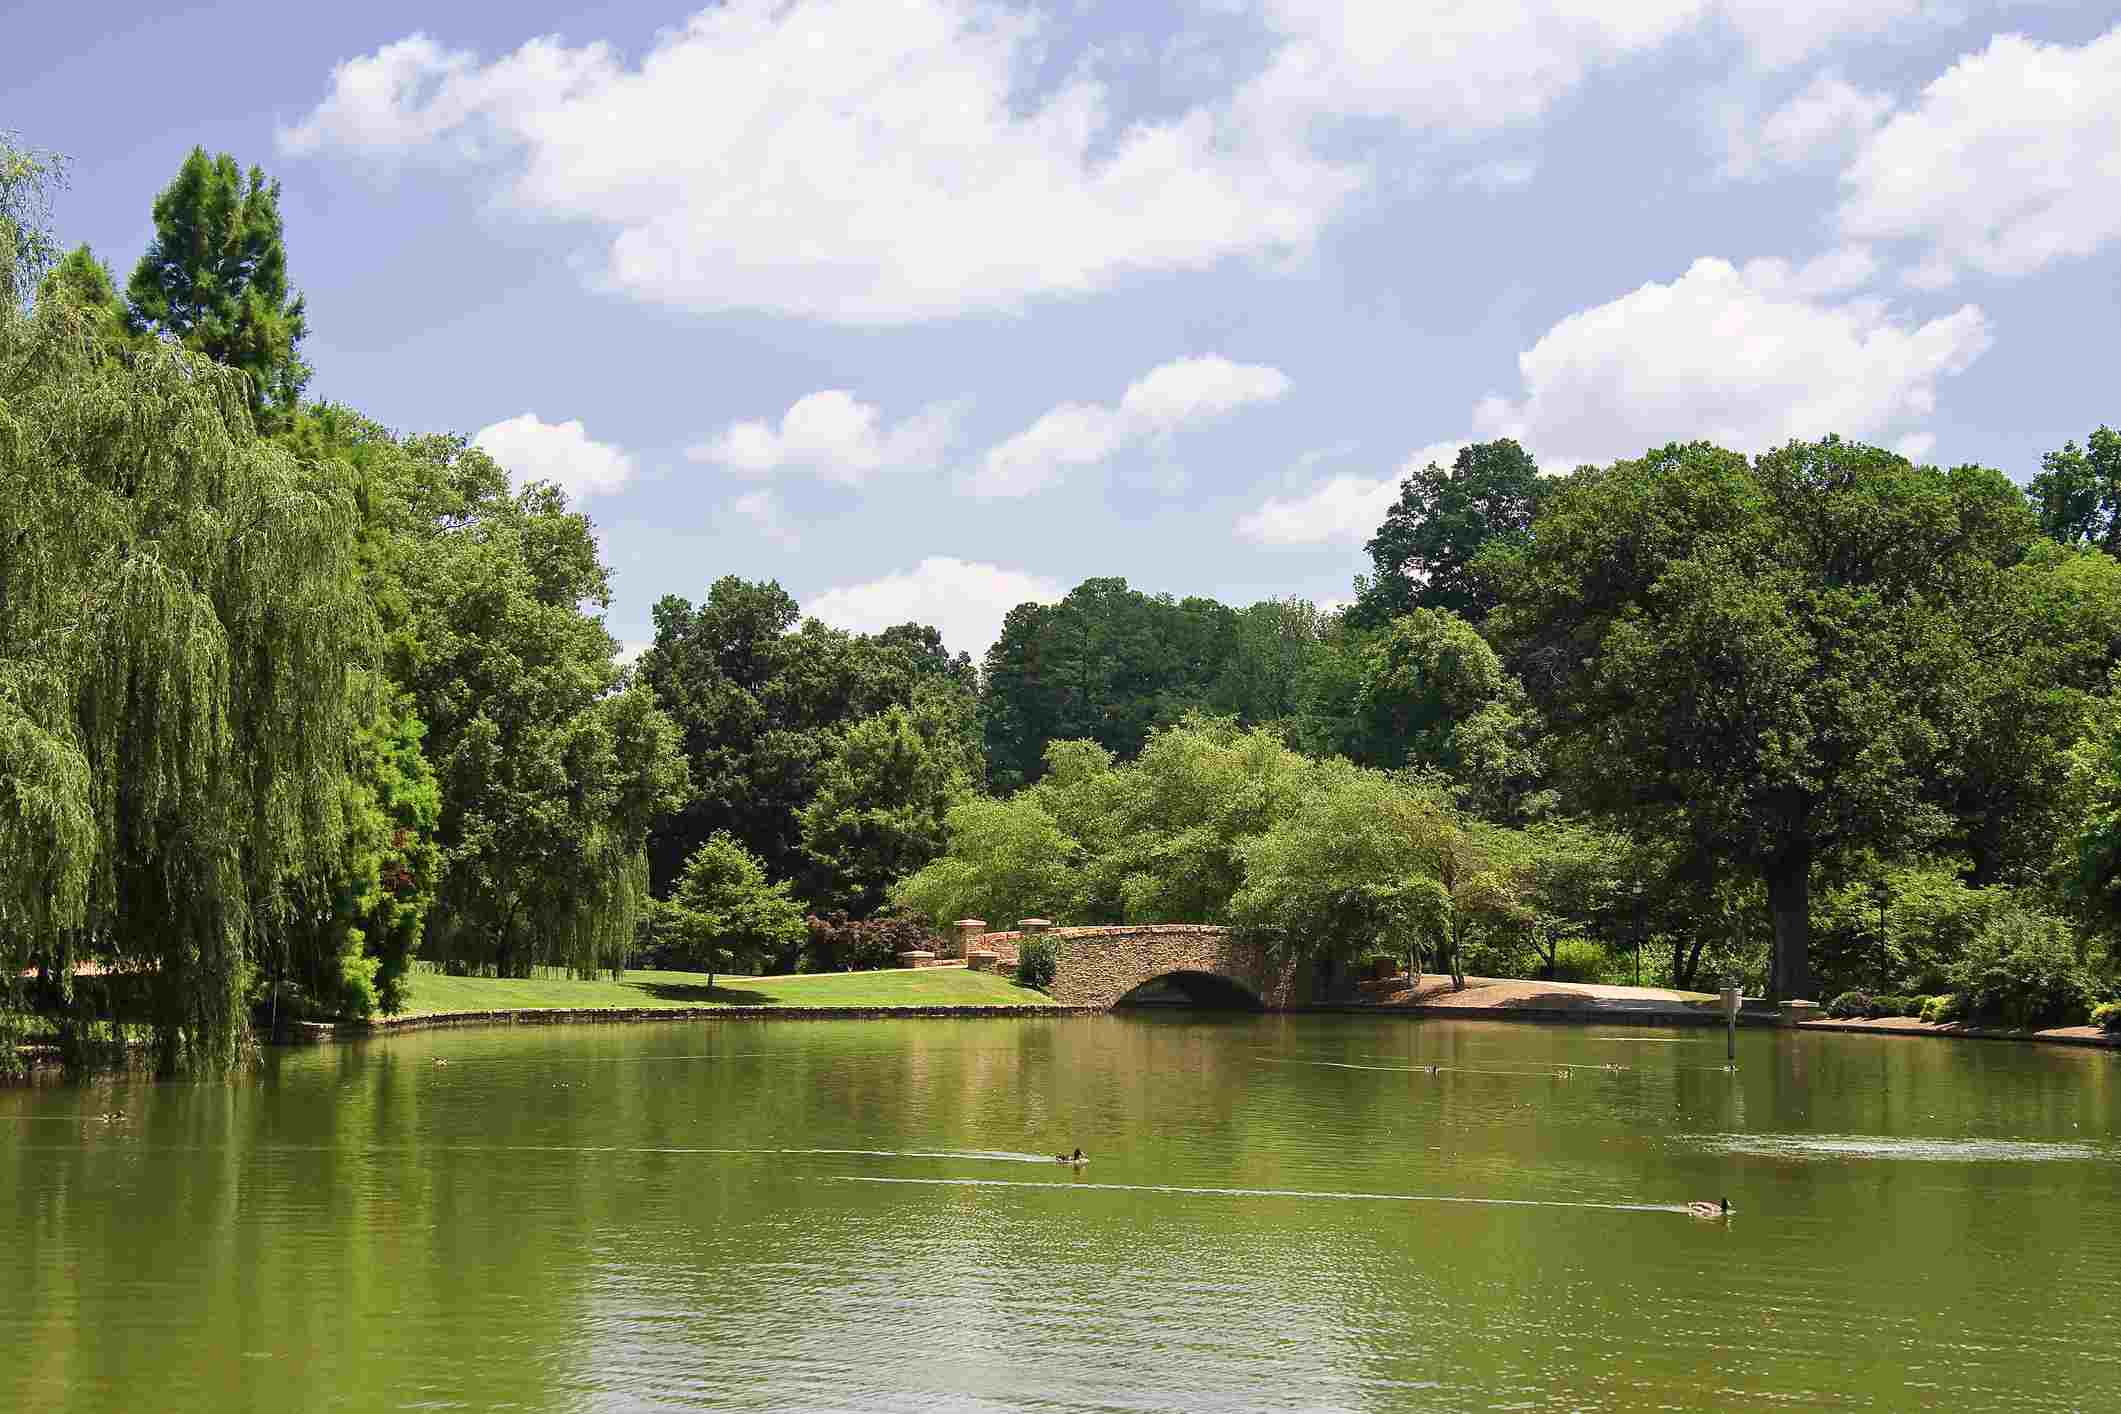 The lake at Freedom Park in the summer in Charlotte